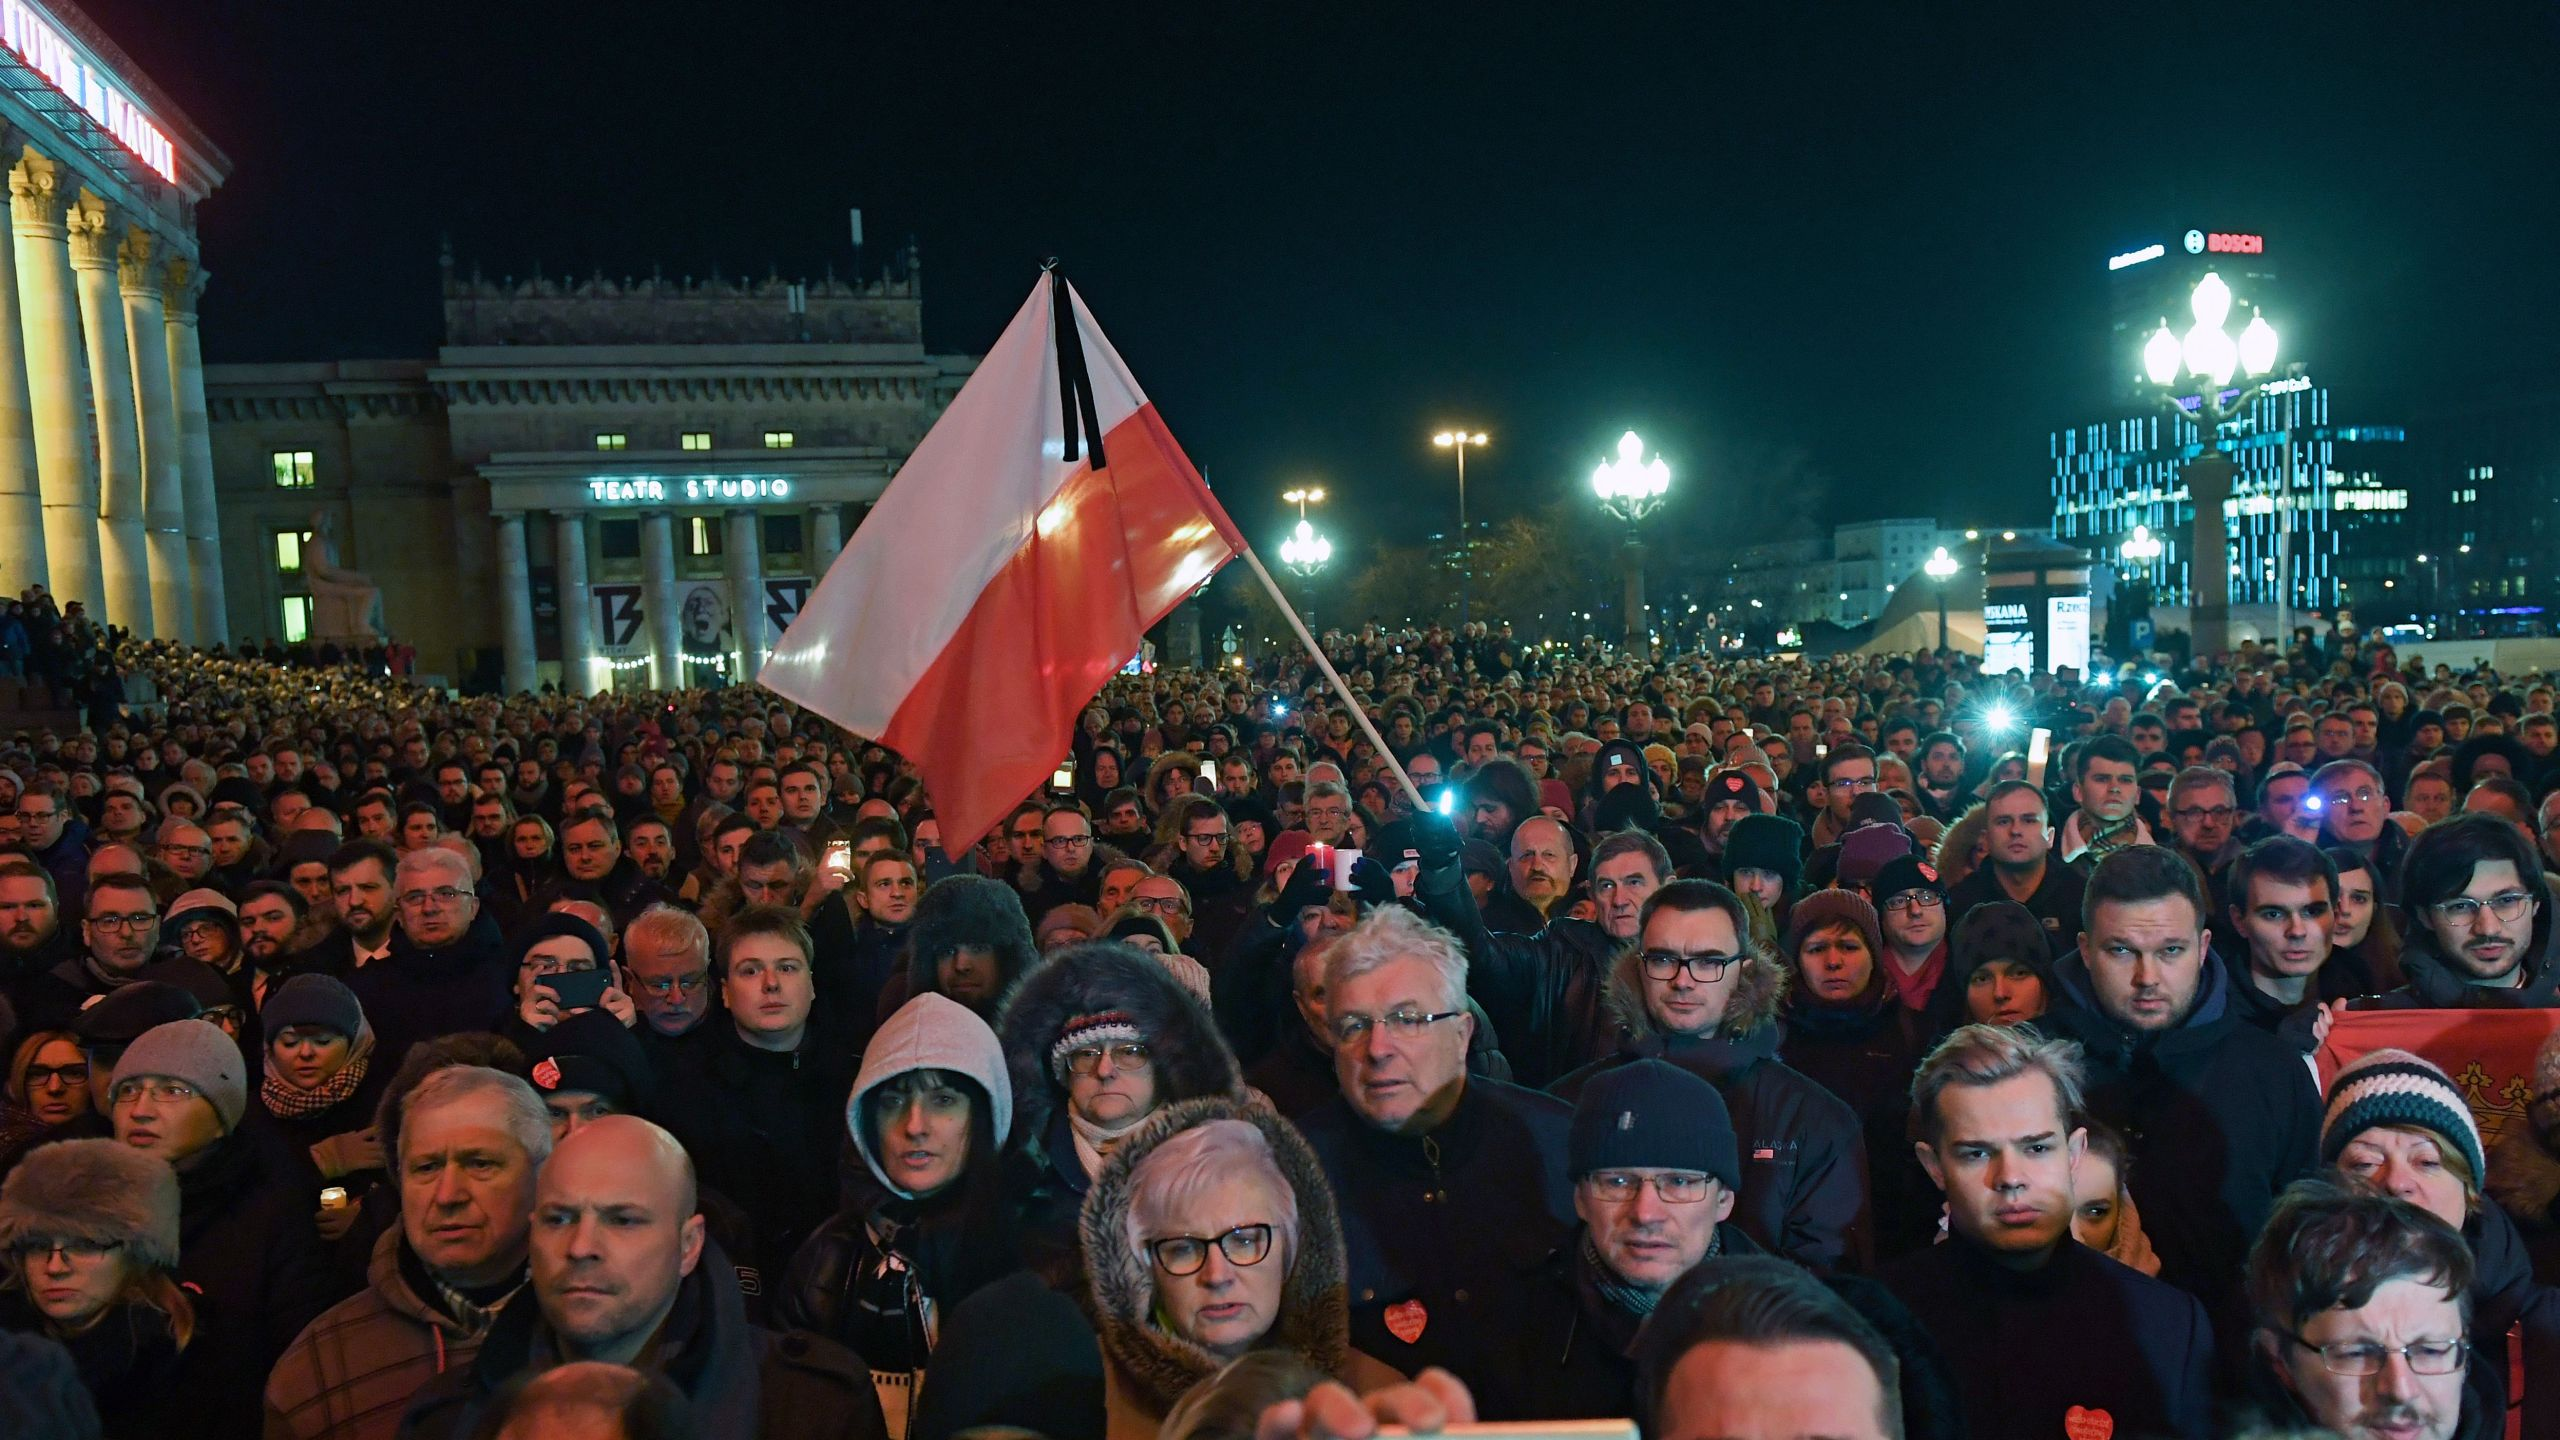 """Thousands of people gather in Warsaw under the slogan """"Stop Hatred"""" on January 14, 2019 to protest against violence and honour Pawel Adamowicz, the late mayor of Polish port city Gdansk, who died after being stabbed in the heart by a young man at a weekend charity fundraiser. (Credit: JANEK SKARZYNSKI/AFP/Getty Images)"""